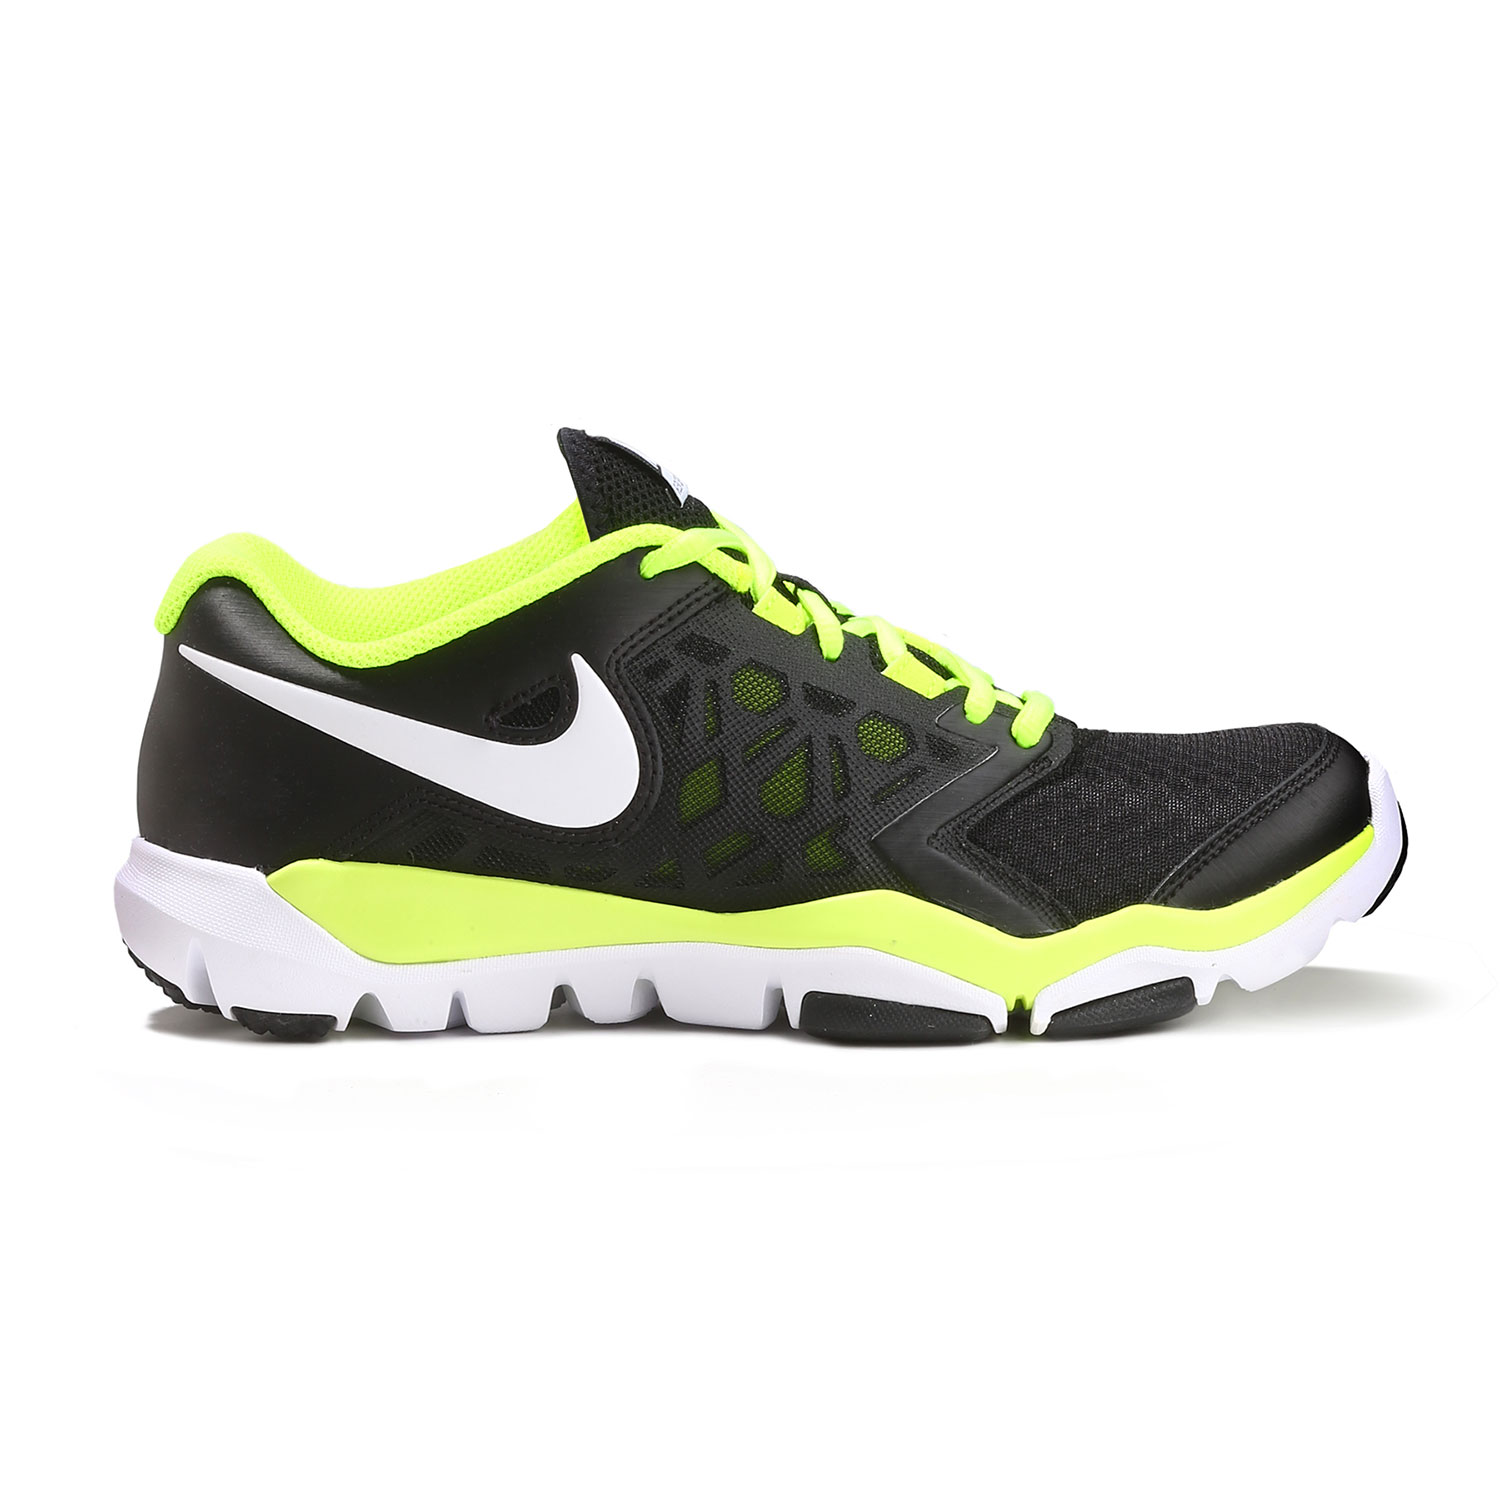 nike flex supreme tr 4 men's